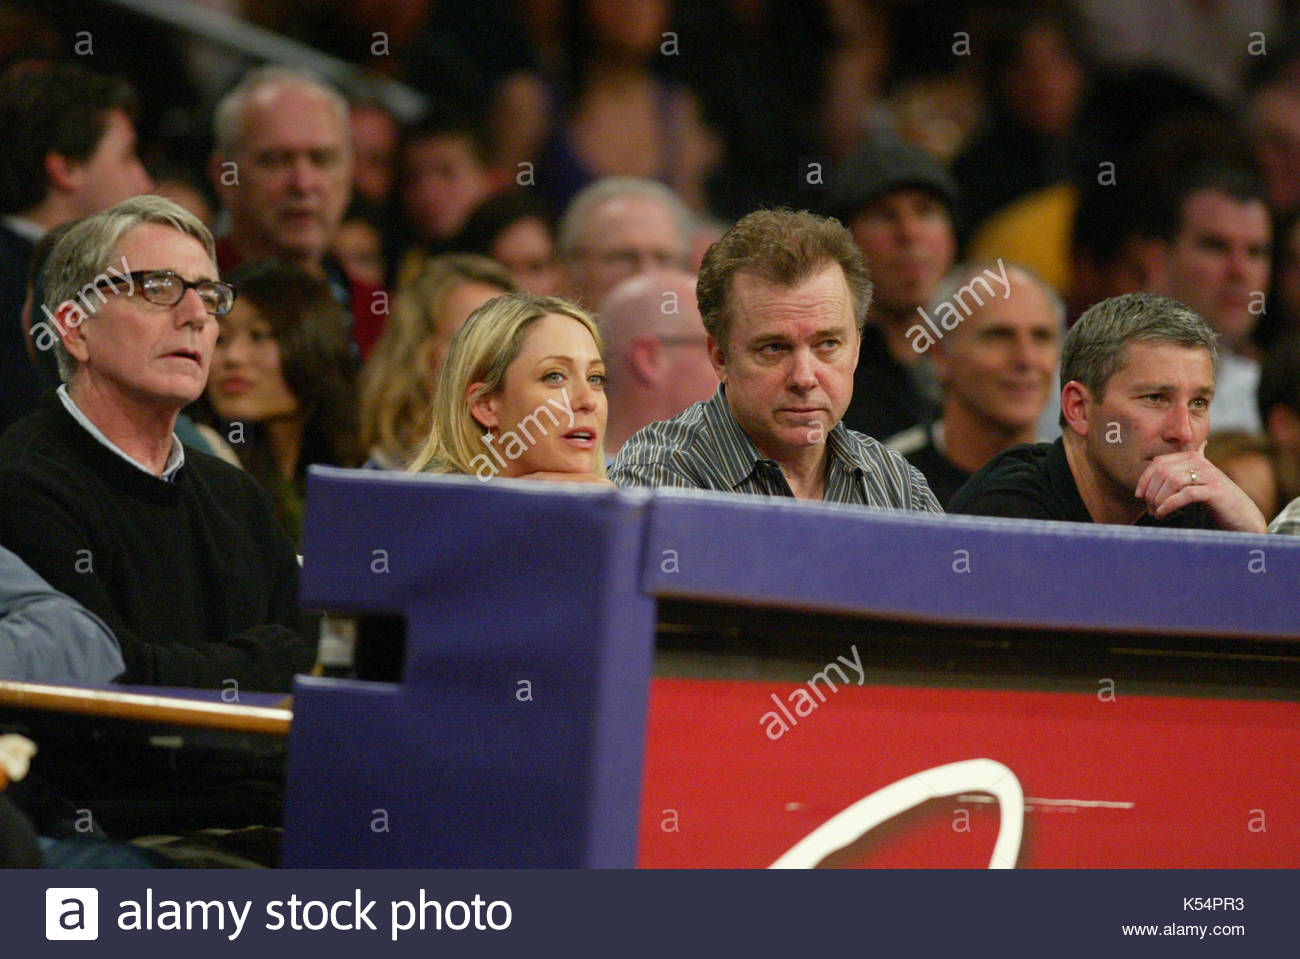 Cristie Kerr and Michael O'Keefe. LPGA Player Cristie Kerr and Michael O'Keefe watching the LA Lakers game. - Stock Image